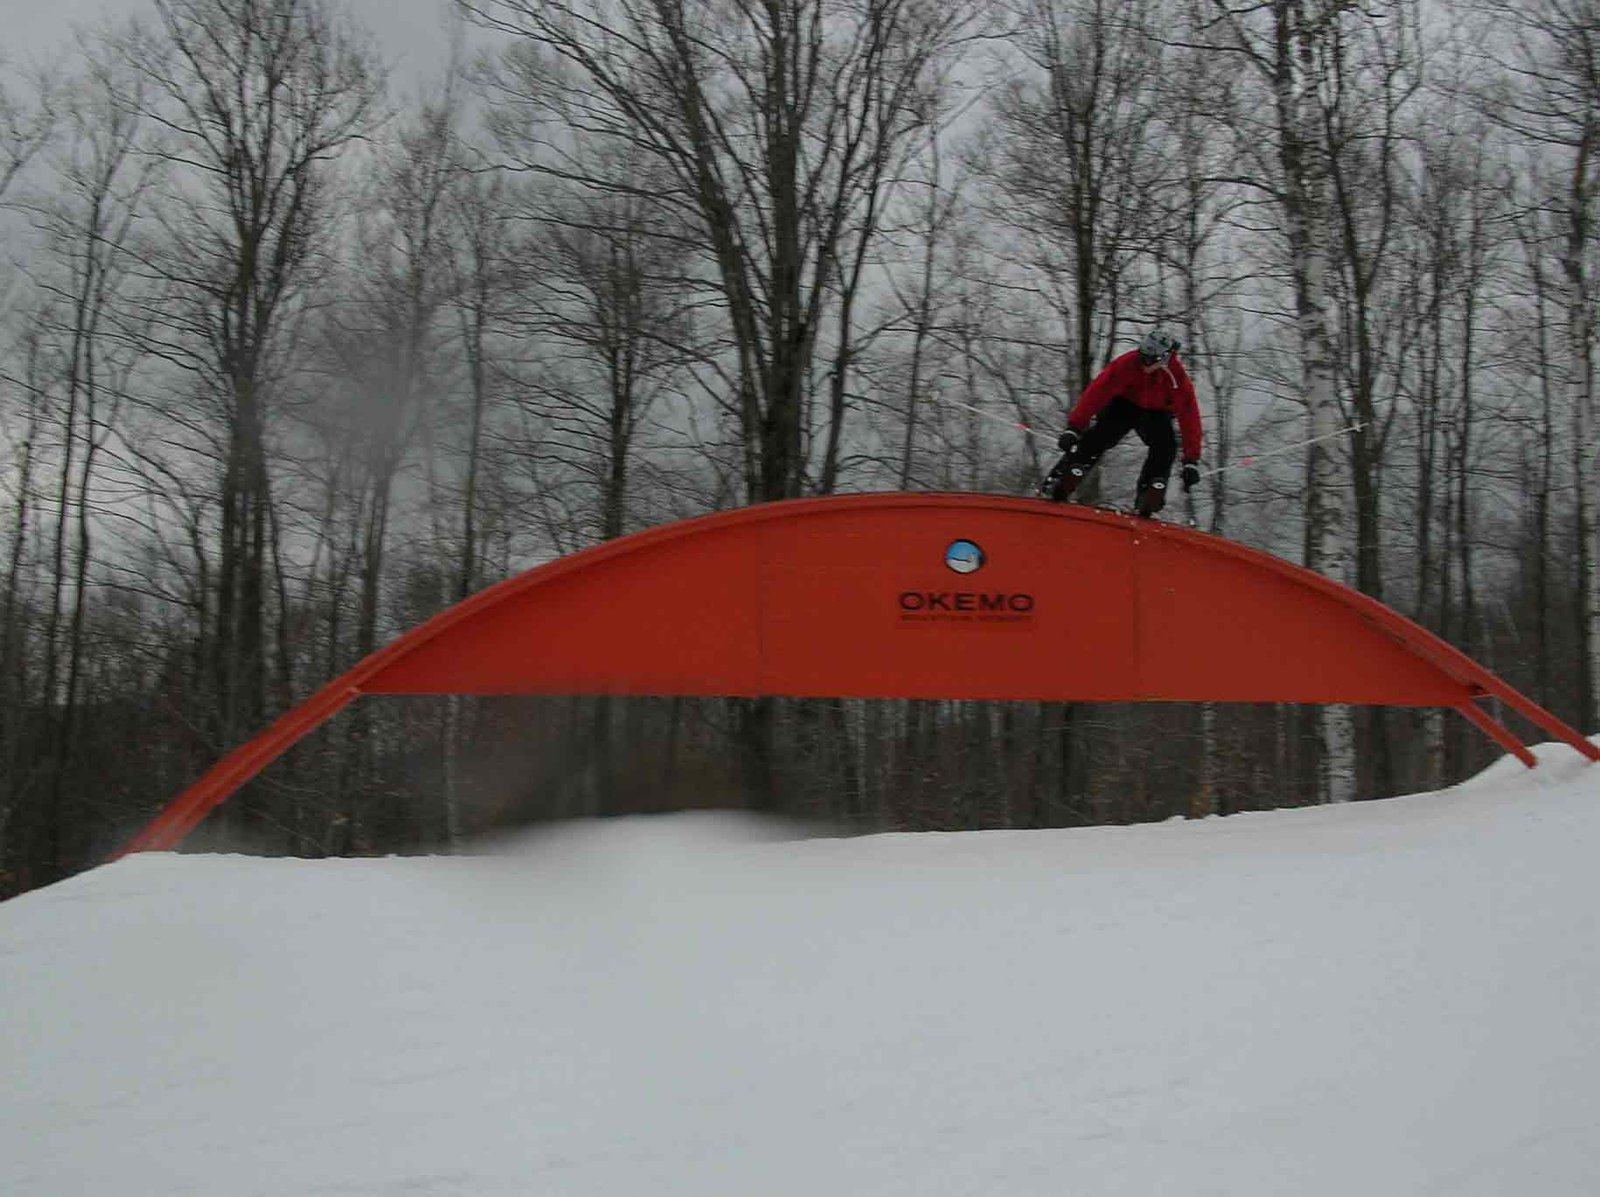 My friend stricks the Rainbow Rail at Okemo